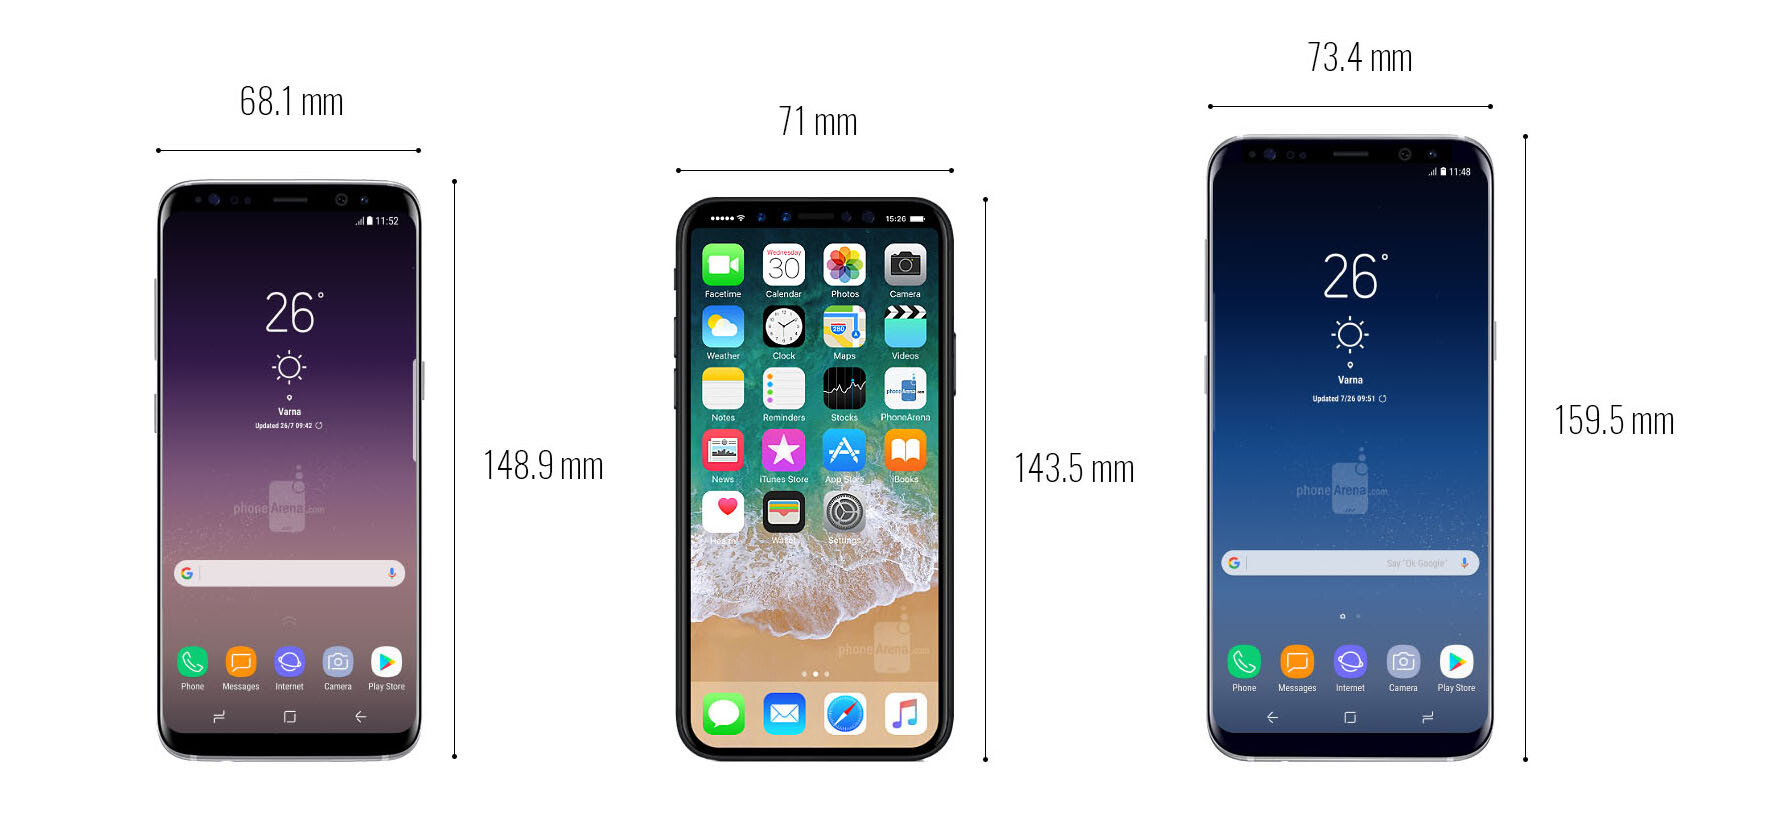 Samsung Galaxy S8 Vs Iphone 7 Size